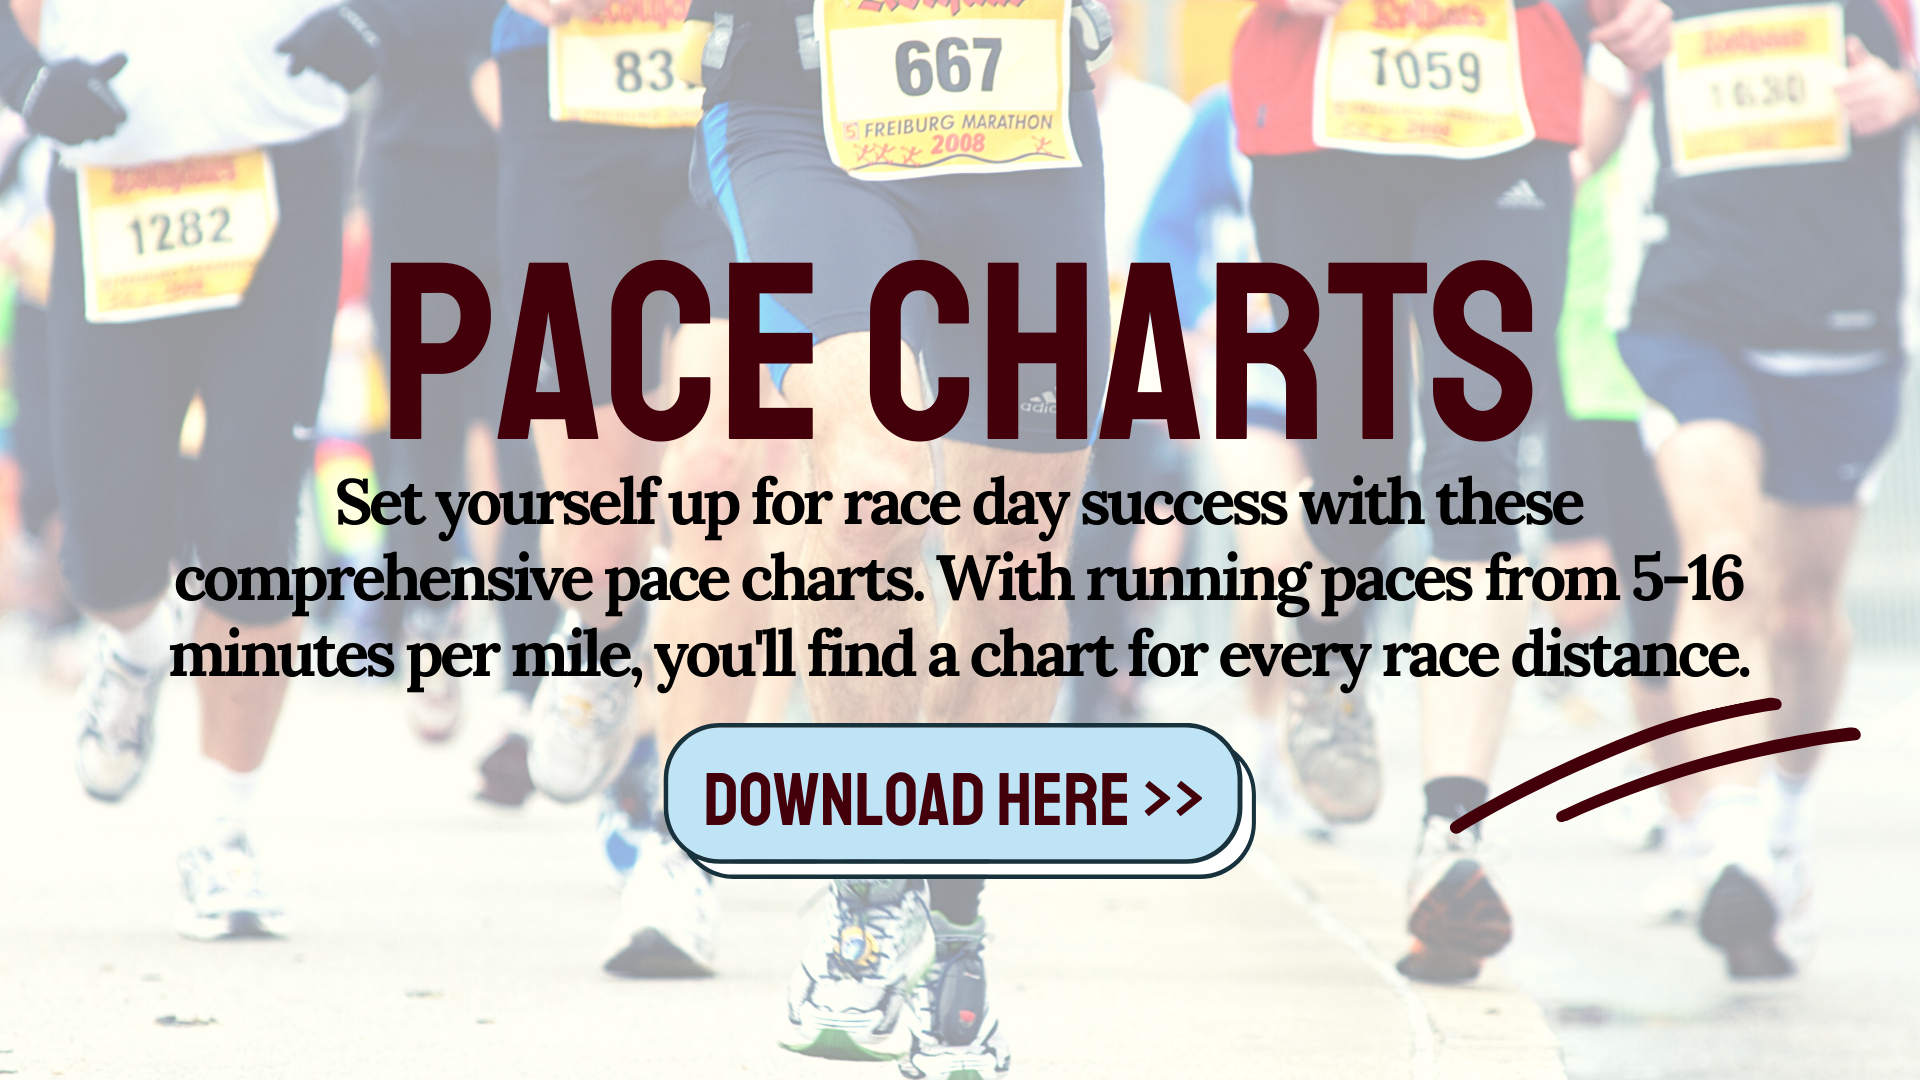 Download these running pace charts for free to guide you on race day and during training. Find mile splits and finish times for 5k, 10k, half marathon and marathon distances at all running paces. Plus an interval and treadmill pace chart! #runningpacecharts #runningpace #runningtraining